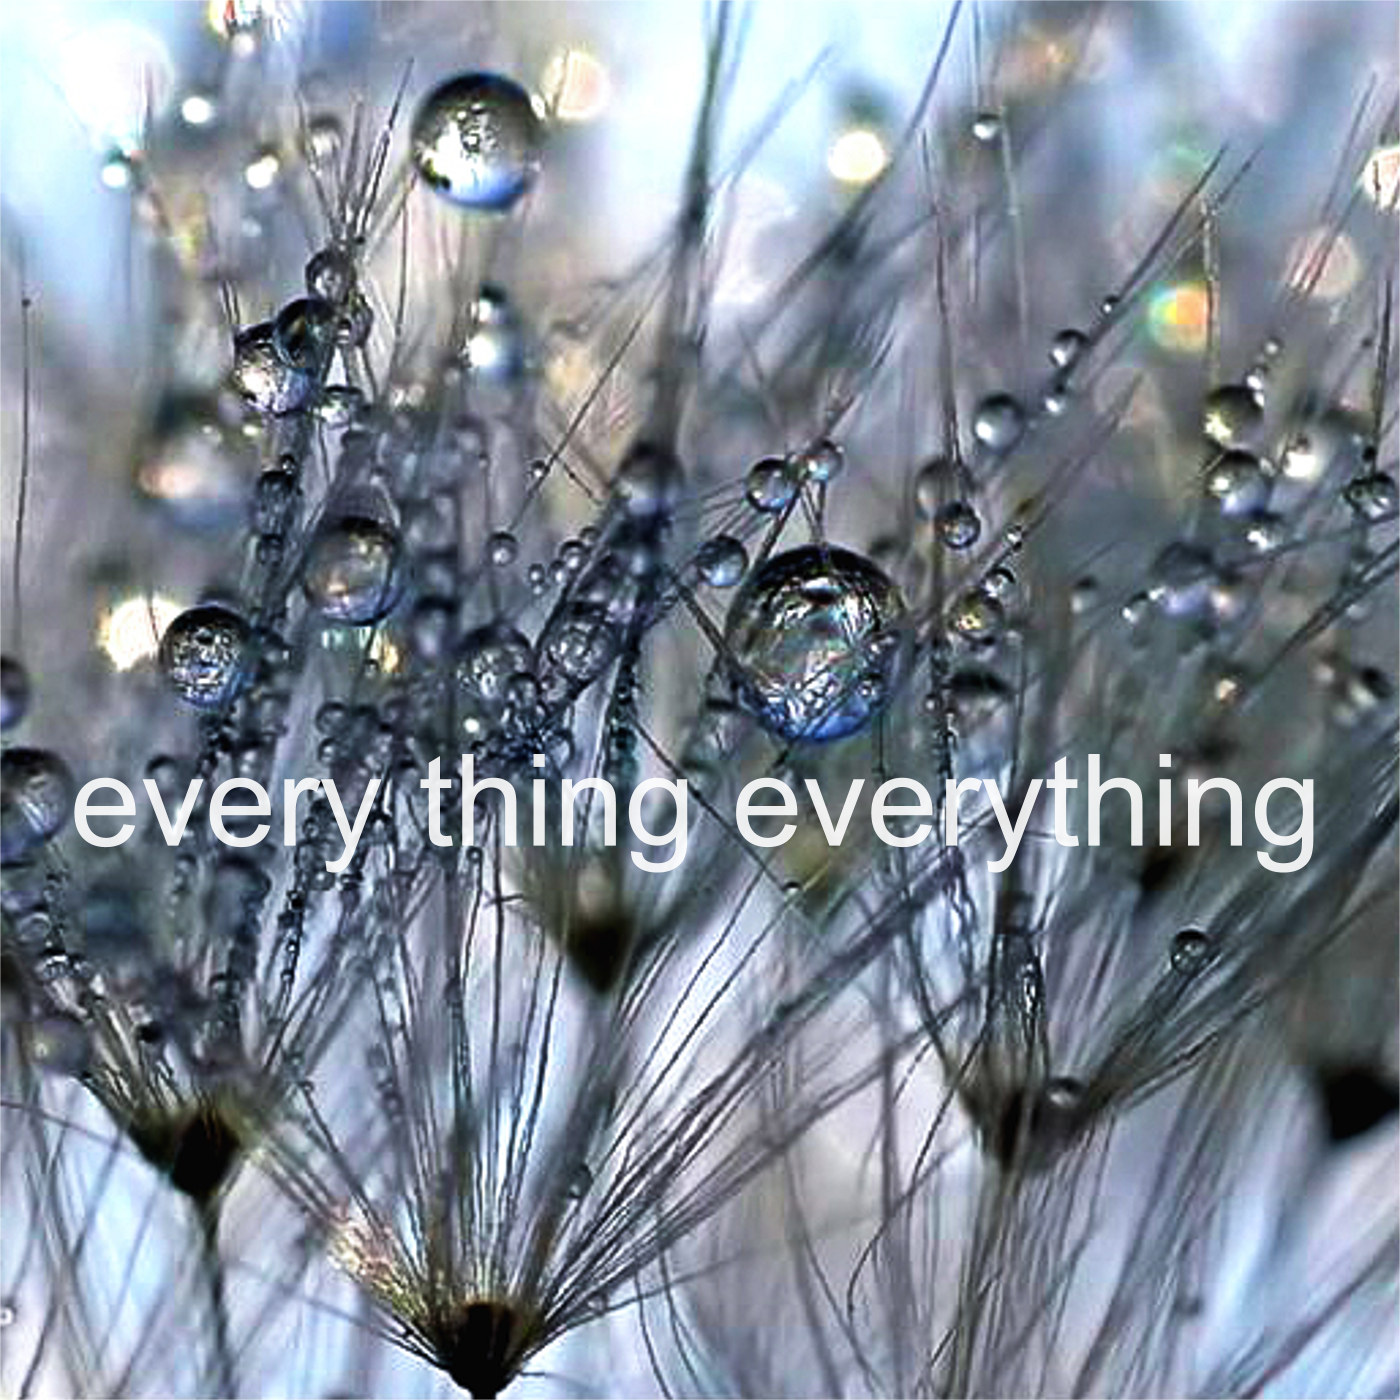 Stephanie Rearick - every thing everything